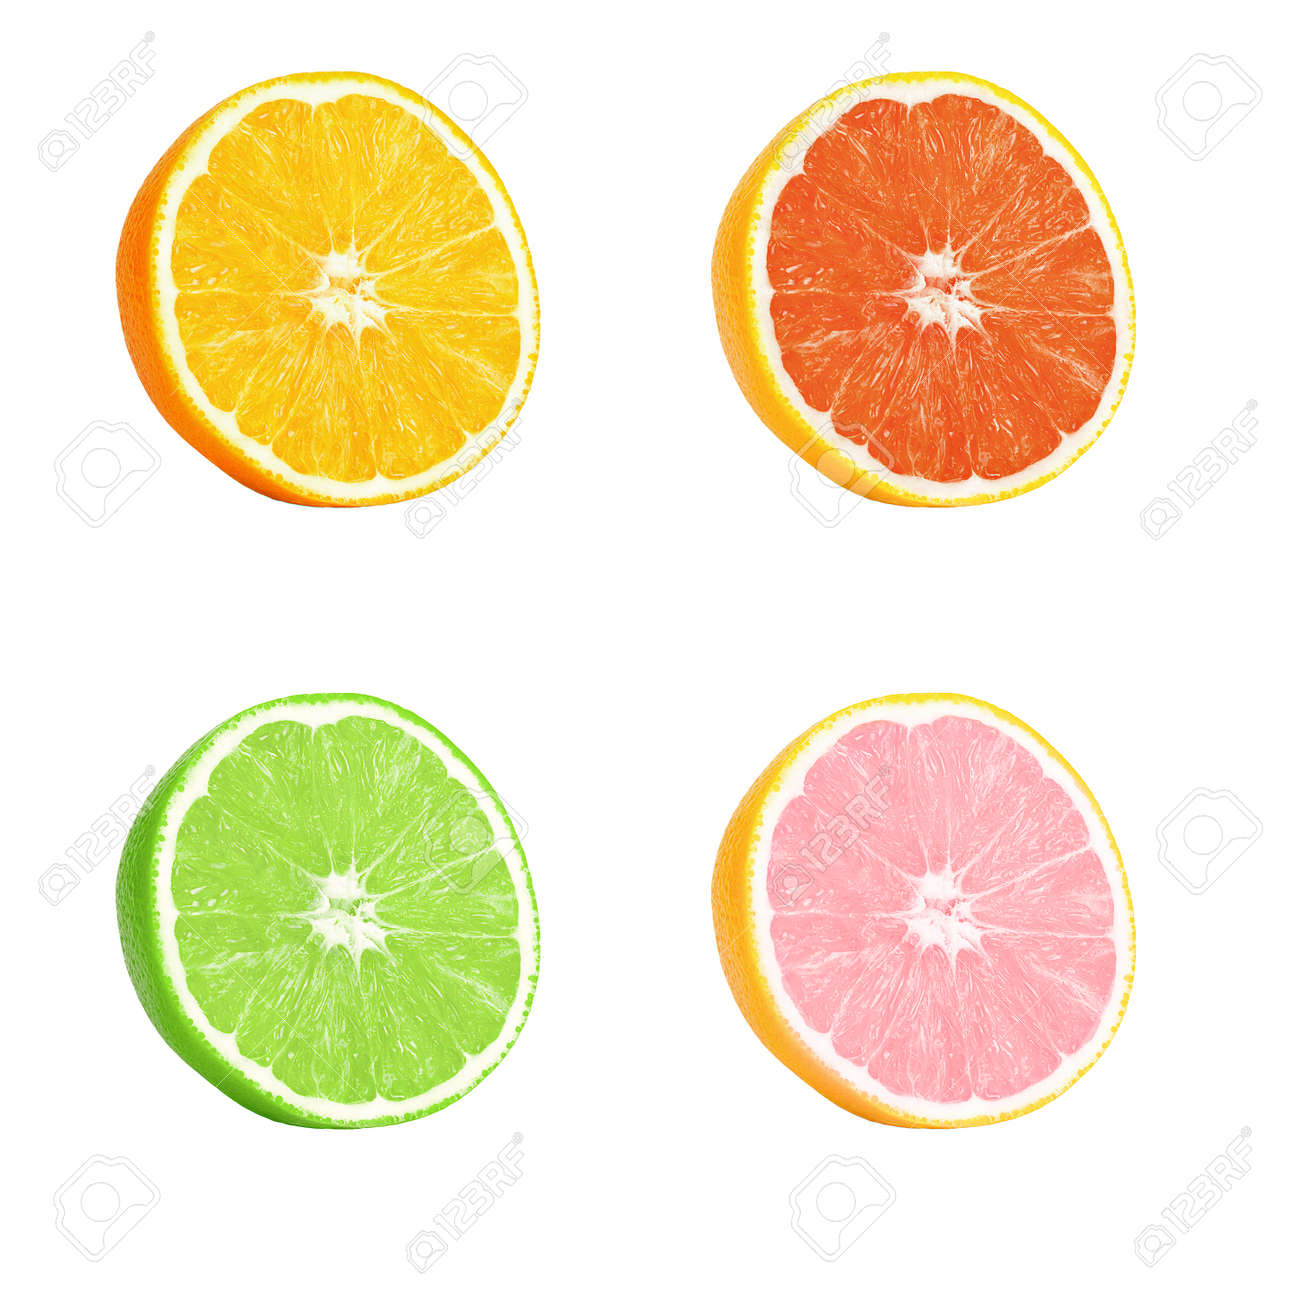 Isolated orange and lime. Several half ripe orange and lime isolated on a white background. Located on its side, a ripe juicy, bright pulp with texture and fibers is visible. - 150592869